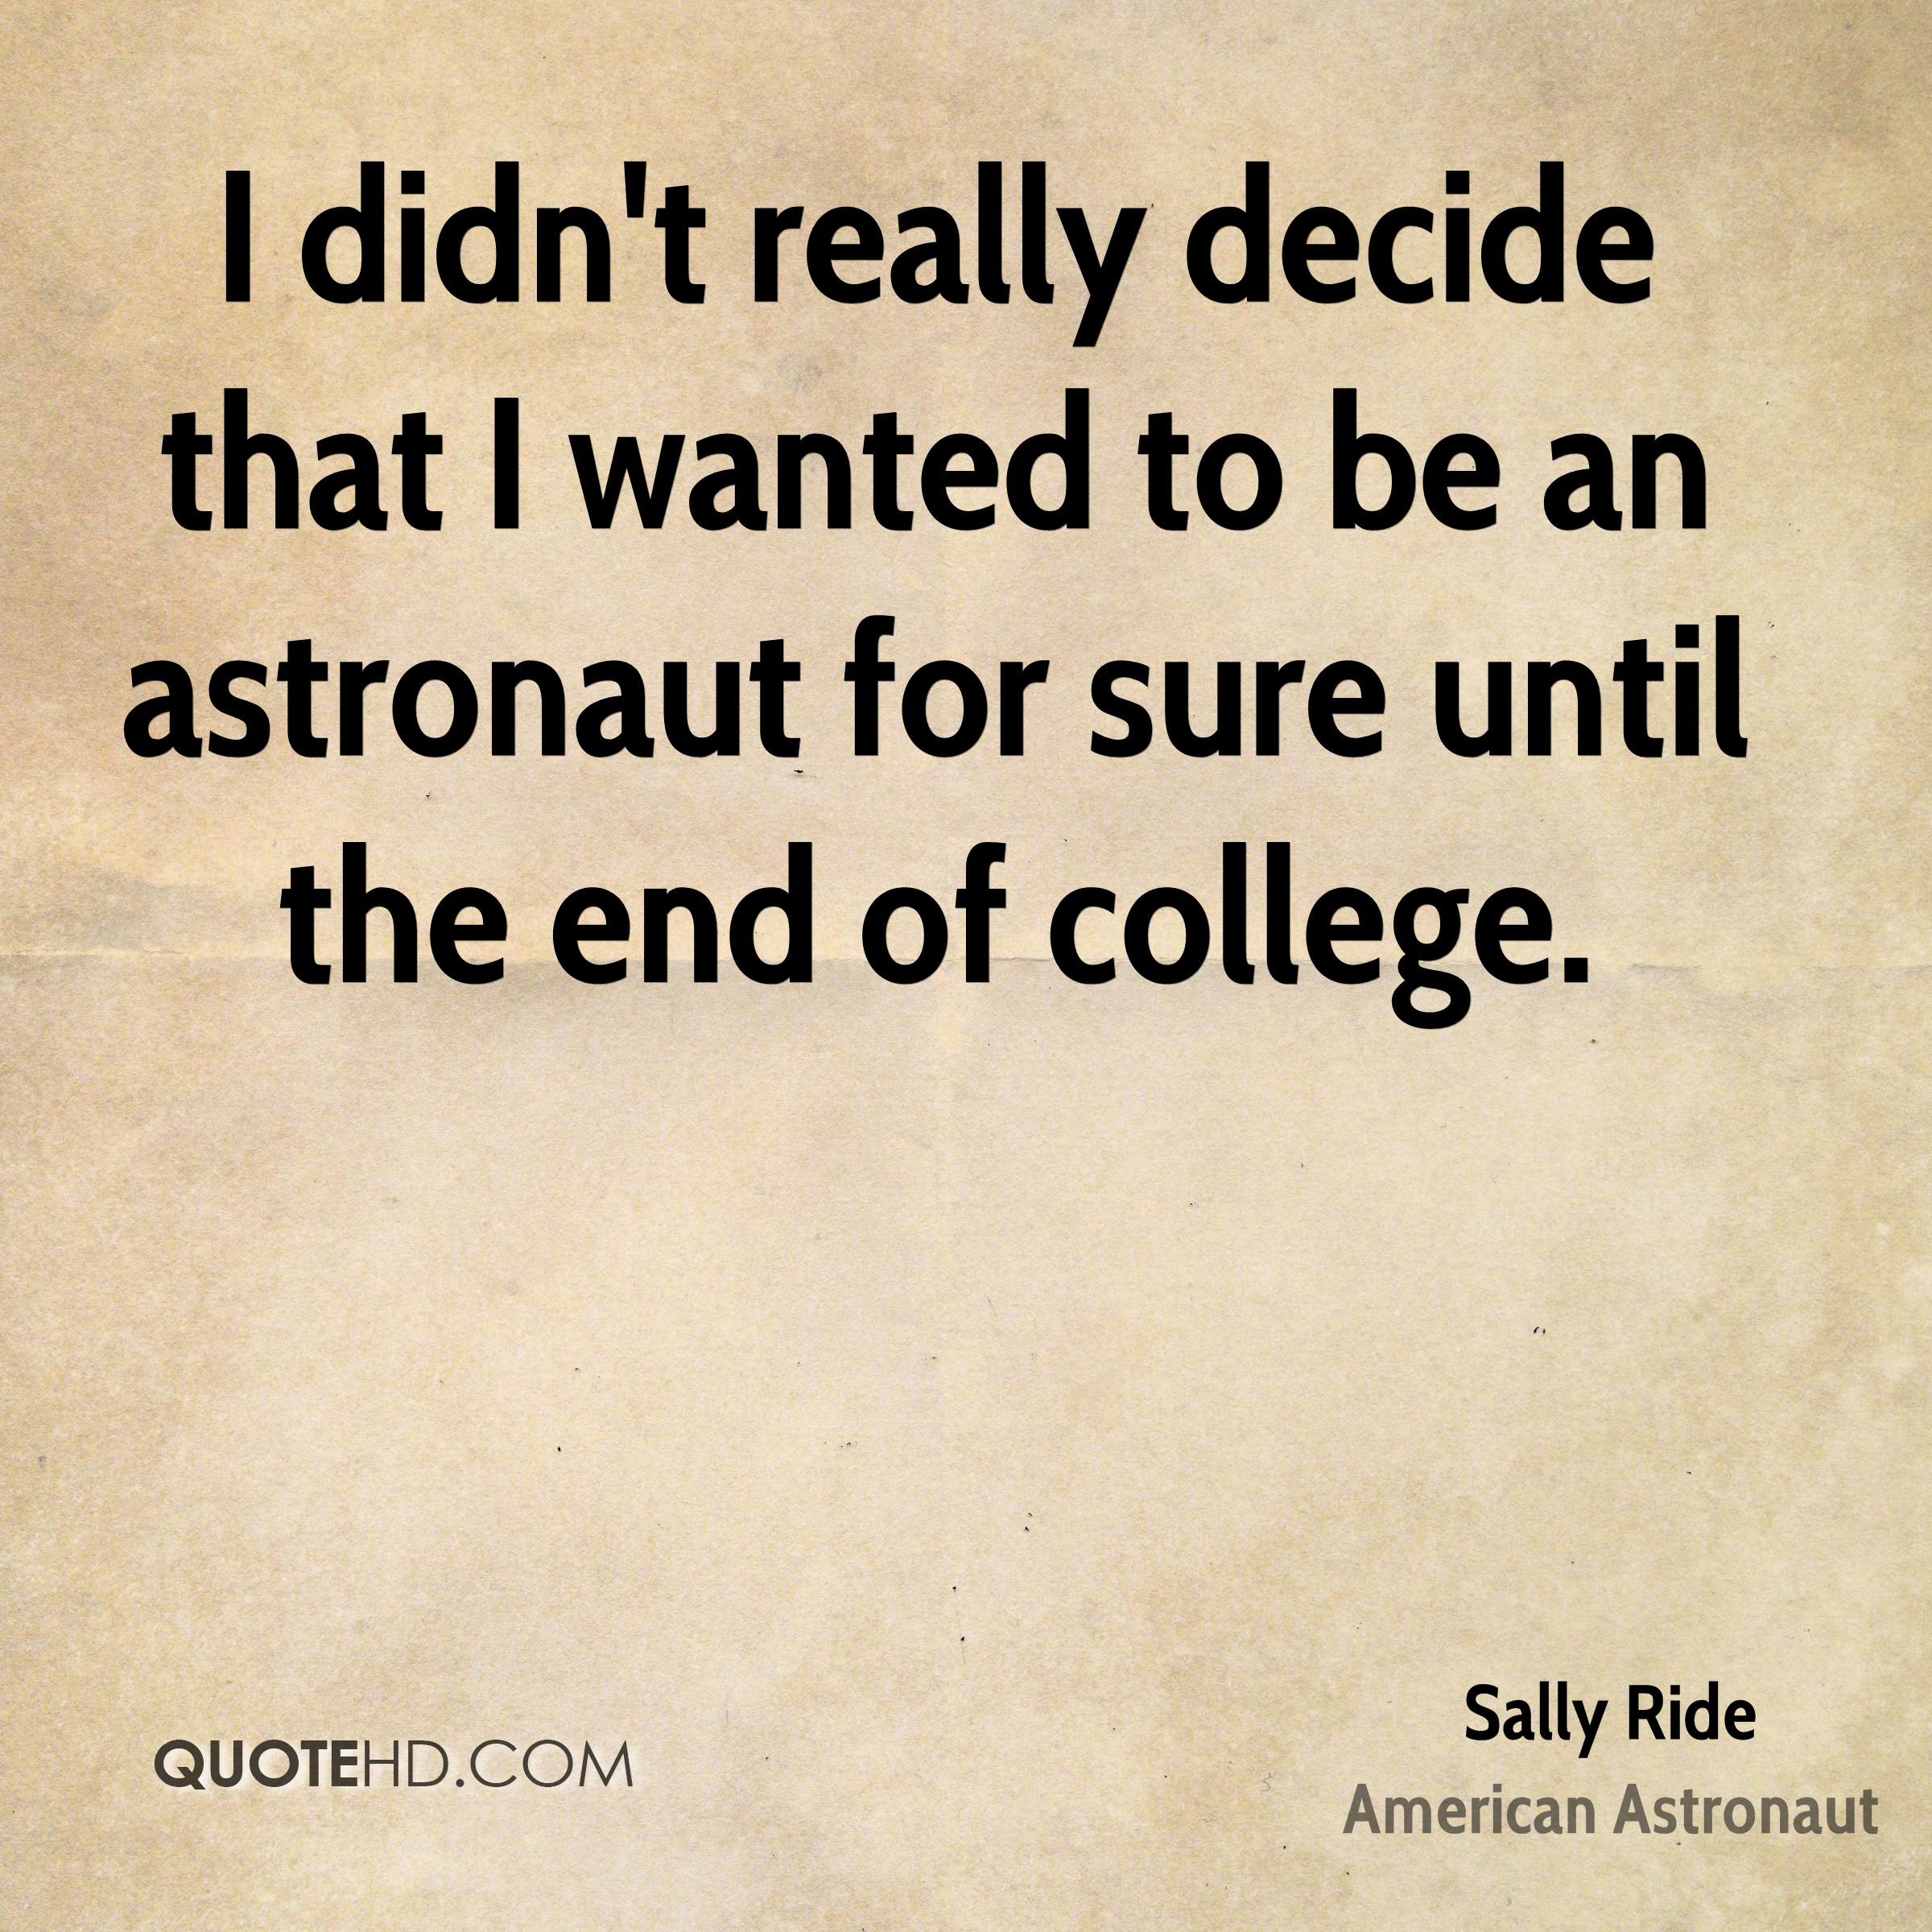 I didn't really decide that I wanted to be an astronaut for sure until the end of college.